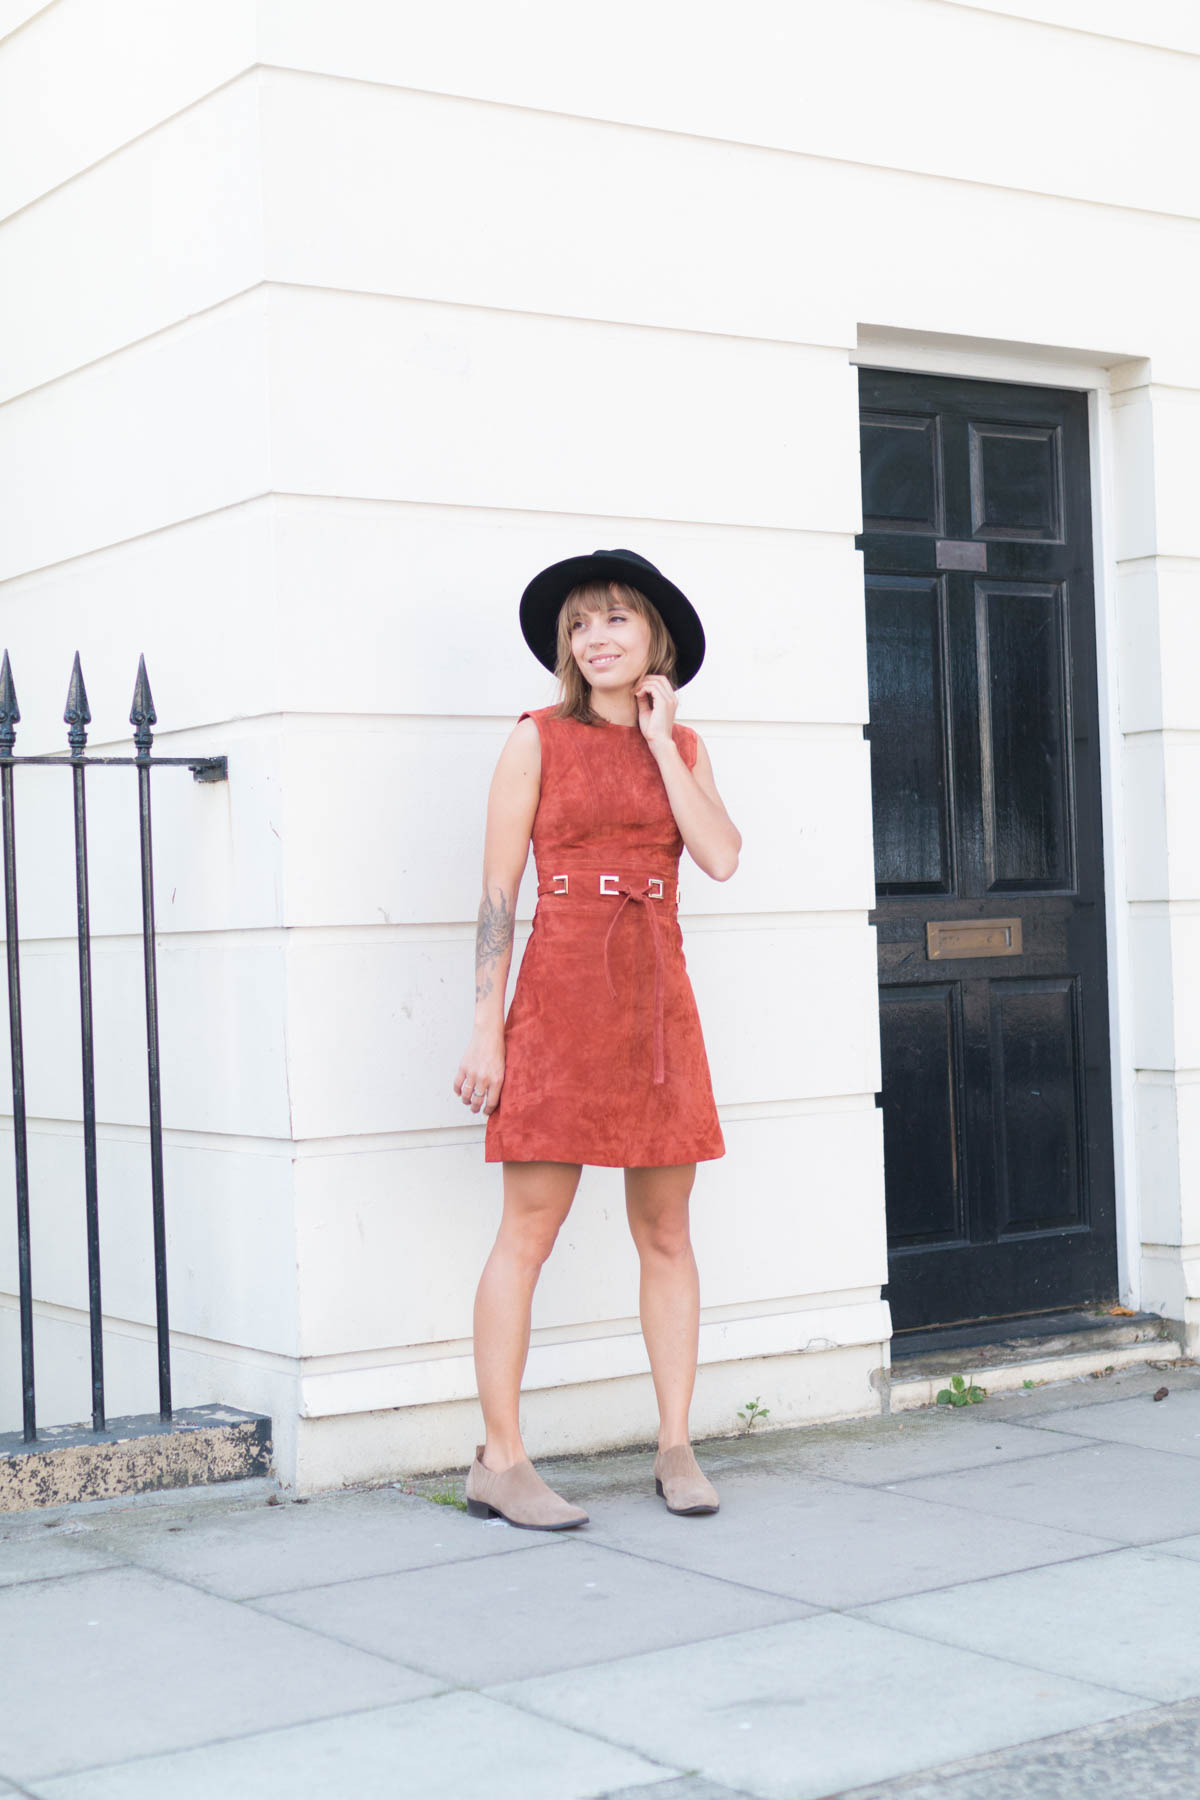 Robe en daim camel et bottine 2 | SP4NK BLOG